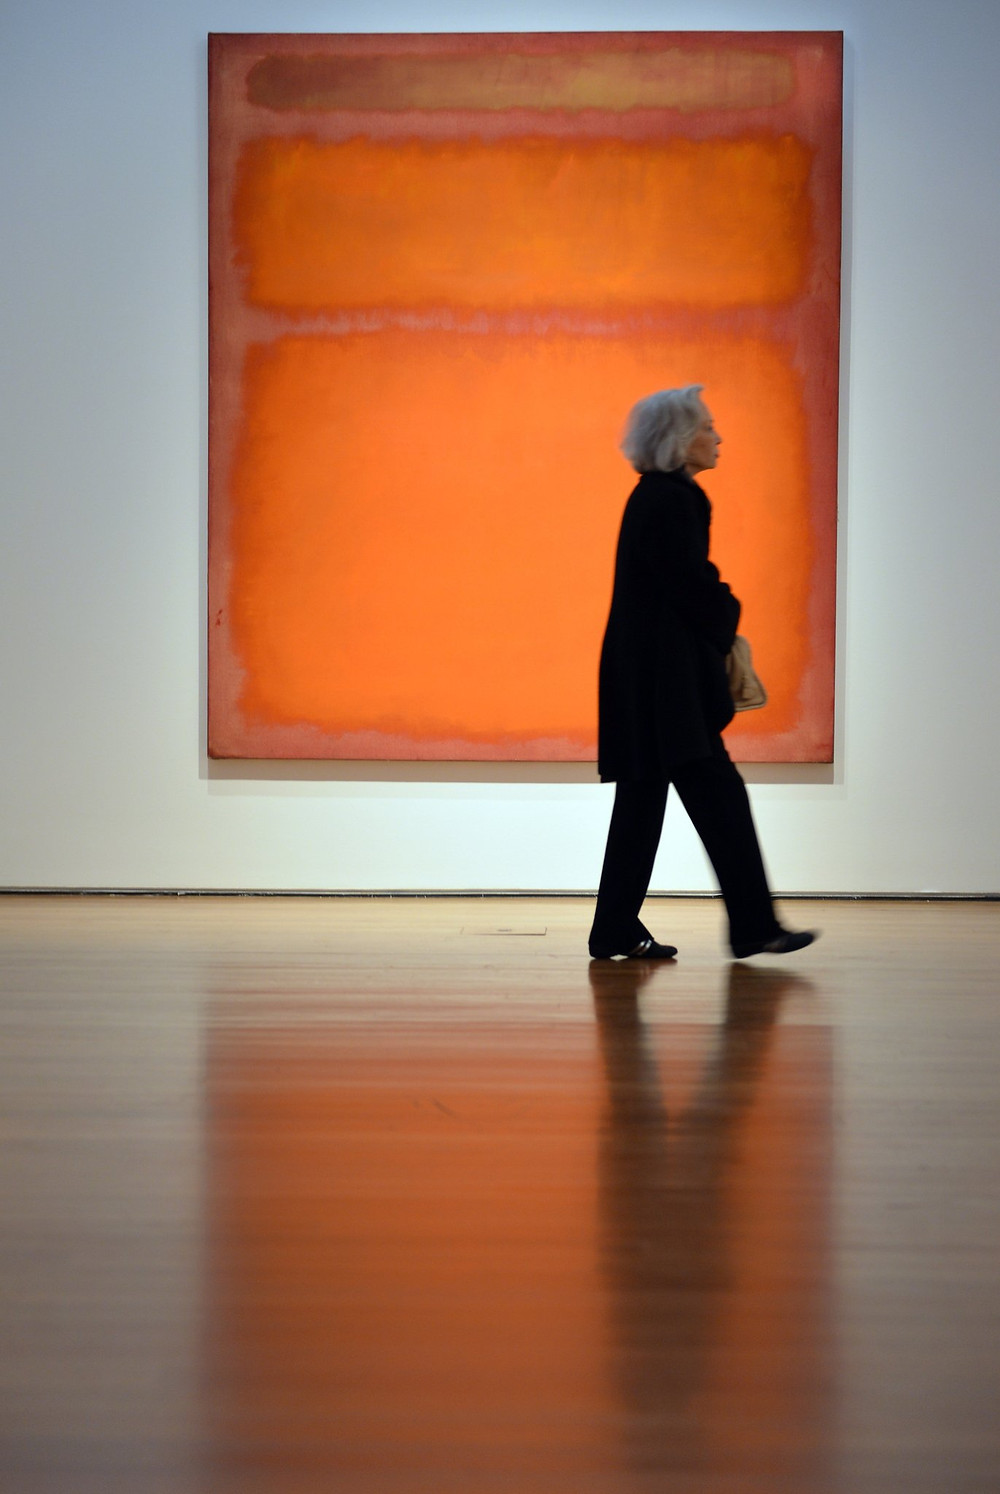 A woman walks past a Rothko abstract painting